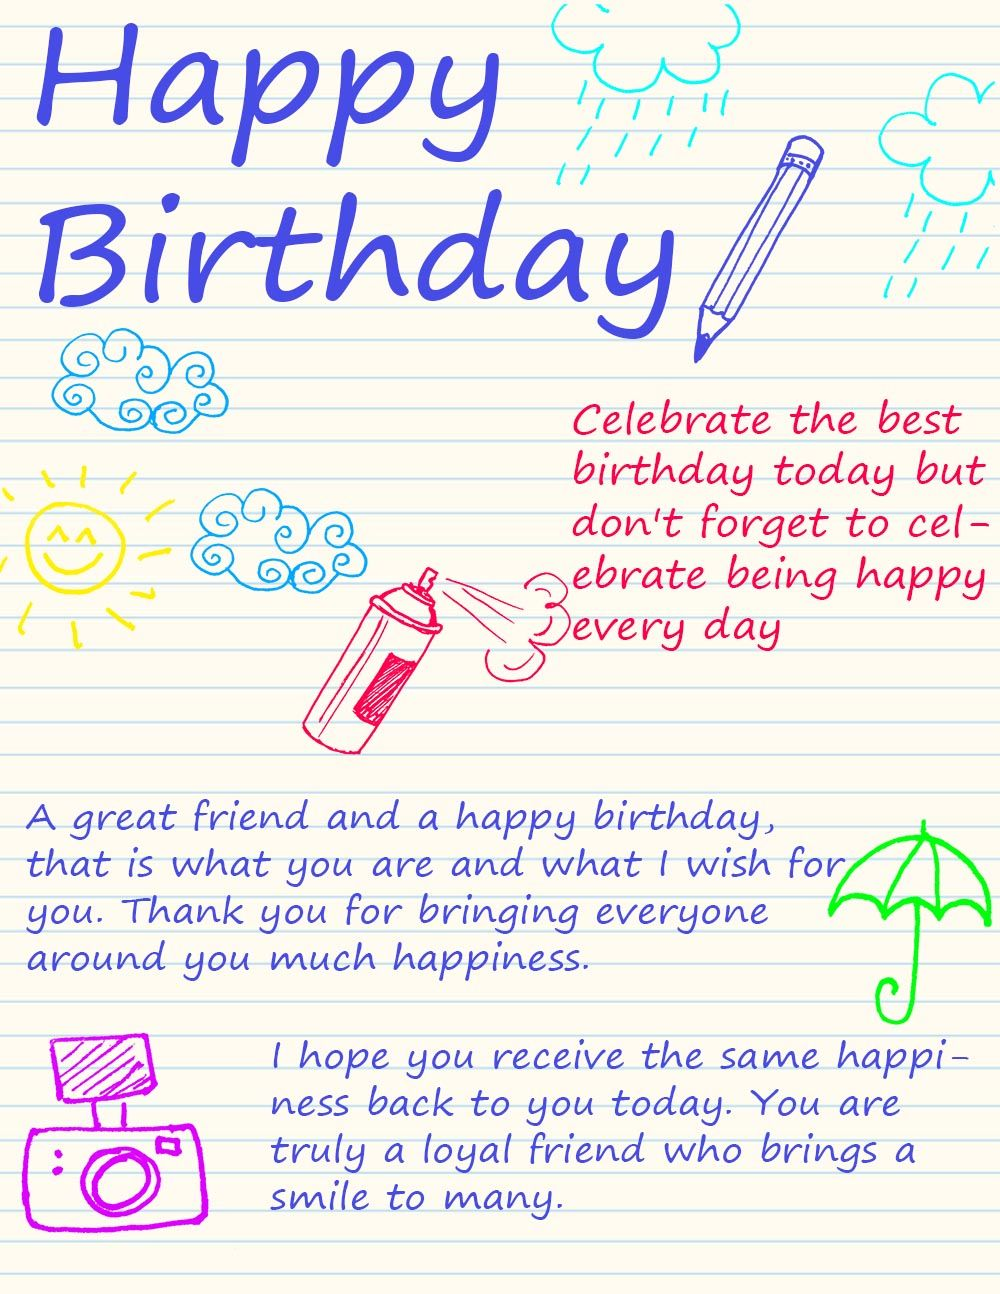 Share free cards for birthdays on facebook happy birthday happy birthday ecard kristyandbryce Choice Image